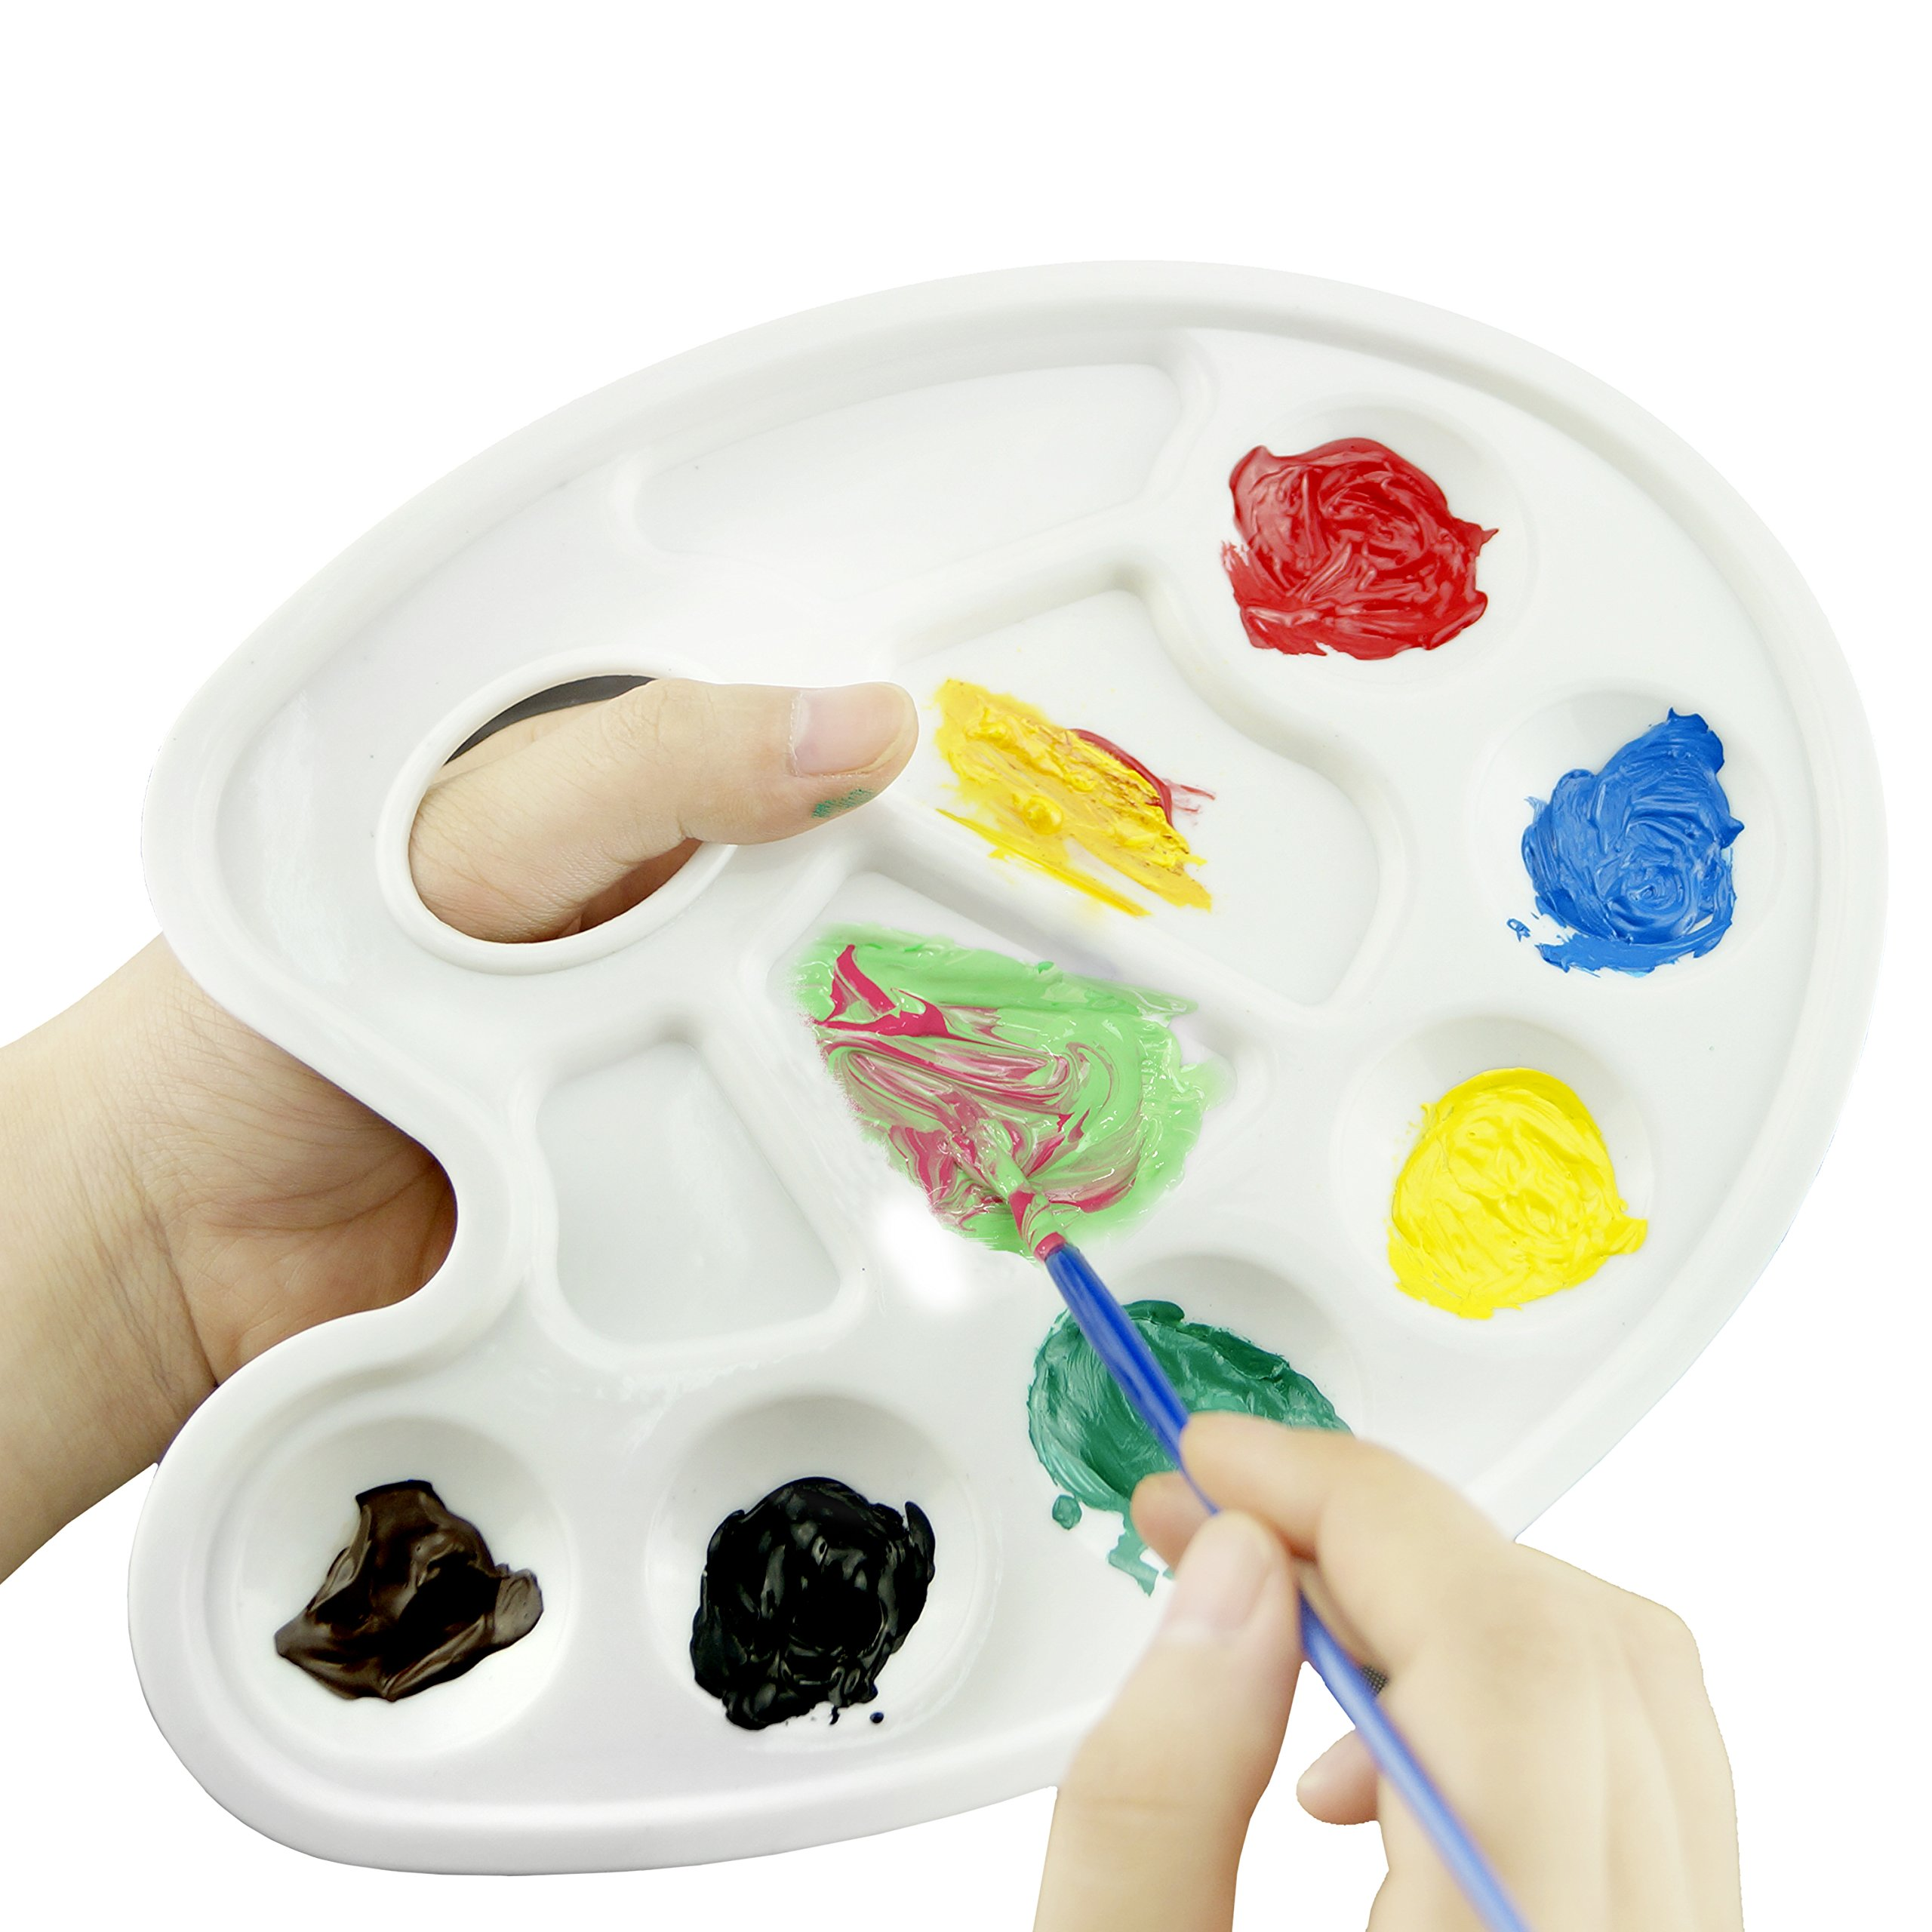 Tray Palette- 10 Pieces Traditionally Shaped Paint Tray Palettes with Thumb Hole - For Different Arts and Crafts Projects- With Kare and Kind Retail Packaging (10 Pieces, White)